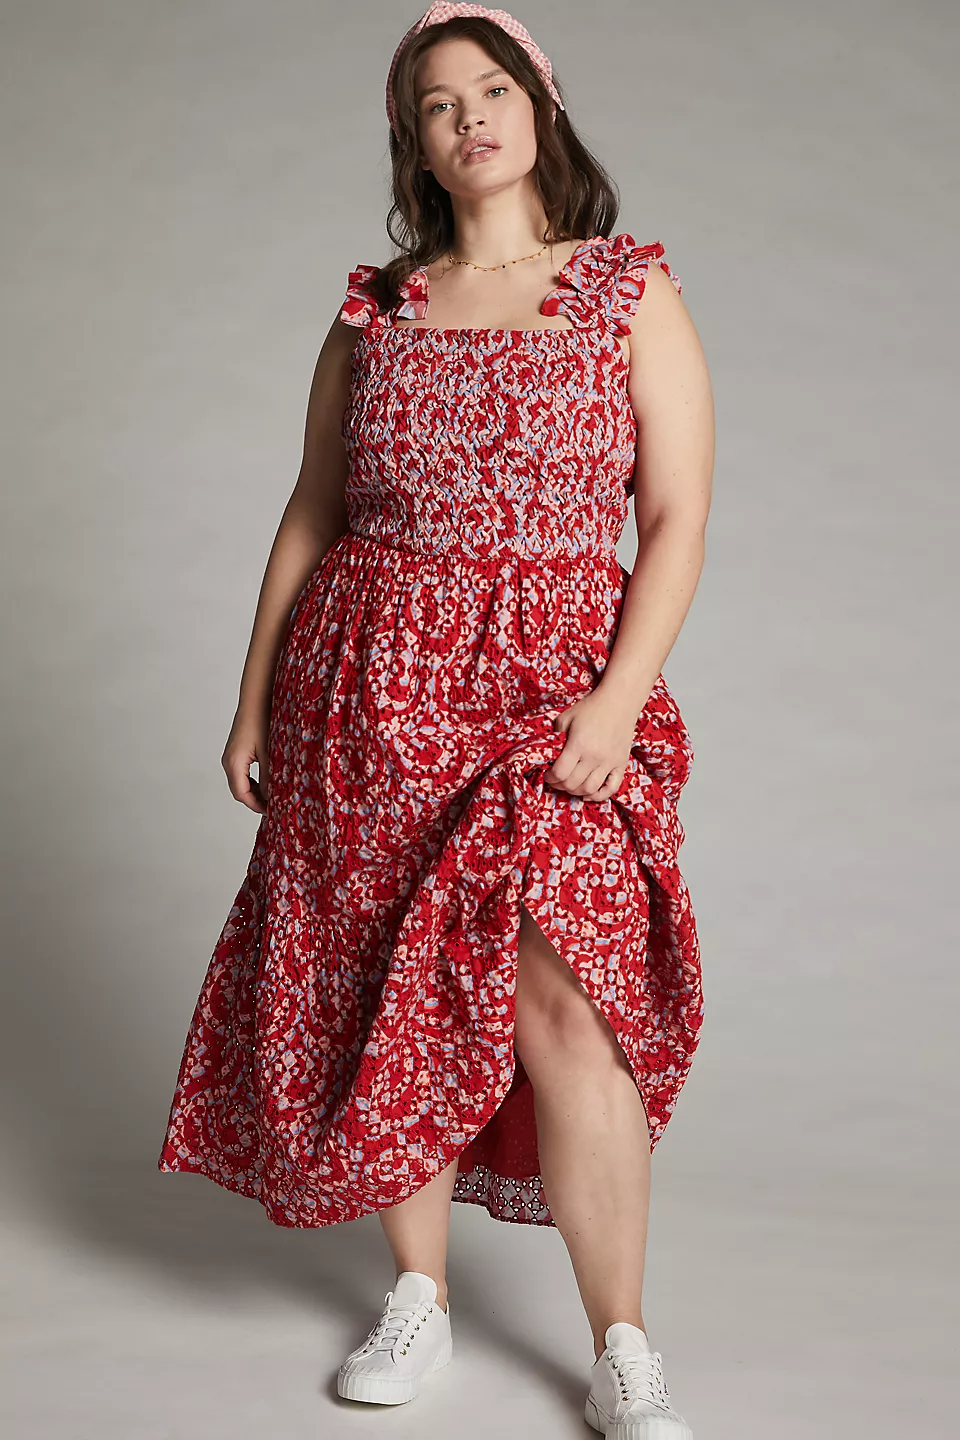 """<h2>Anthropologie</h2><br><strong>Best For: </strong>Cottage Core Meets Boho Chic <br><strong>Size Range: </strong>00-26<br><br>Anthropologie is good for embracing your inner hippie and prairie dweller alike. It's great for fun patterned dresses and unique jumpsuits. Jump to here if you have a wedding to attend when the Panny-D calms down! <br><br><em>Shop <a href=""""https://www.anthropologie.com/plus-size-clothing"""" rel=""""nofollow noopener"""" target=""""_blank"""" data-ylk=""""slk:Anthropologie"""" class=""""link rapid-noclick-resp""""><strong>Anthropologie</strong></a></em><br><br><strong>Atelier 1756</strong> Amal Embroidered Midi Dress, $, available at <a href=""""https://go.skimresources.com/?id=30283X879131&url=https%3A%2F%2Fwww.anthropologie.com%2Fshop%2Famal-embroidered-midi-dress"""" rel=""""nofollow noopener"""" target=""""_blank"""" data-ylk=""""slk:Anthropologie"""" class=""""link rapid-noclick-resp"""">Anthropologie</a>"""